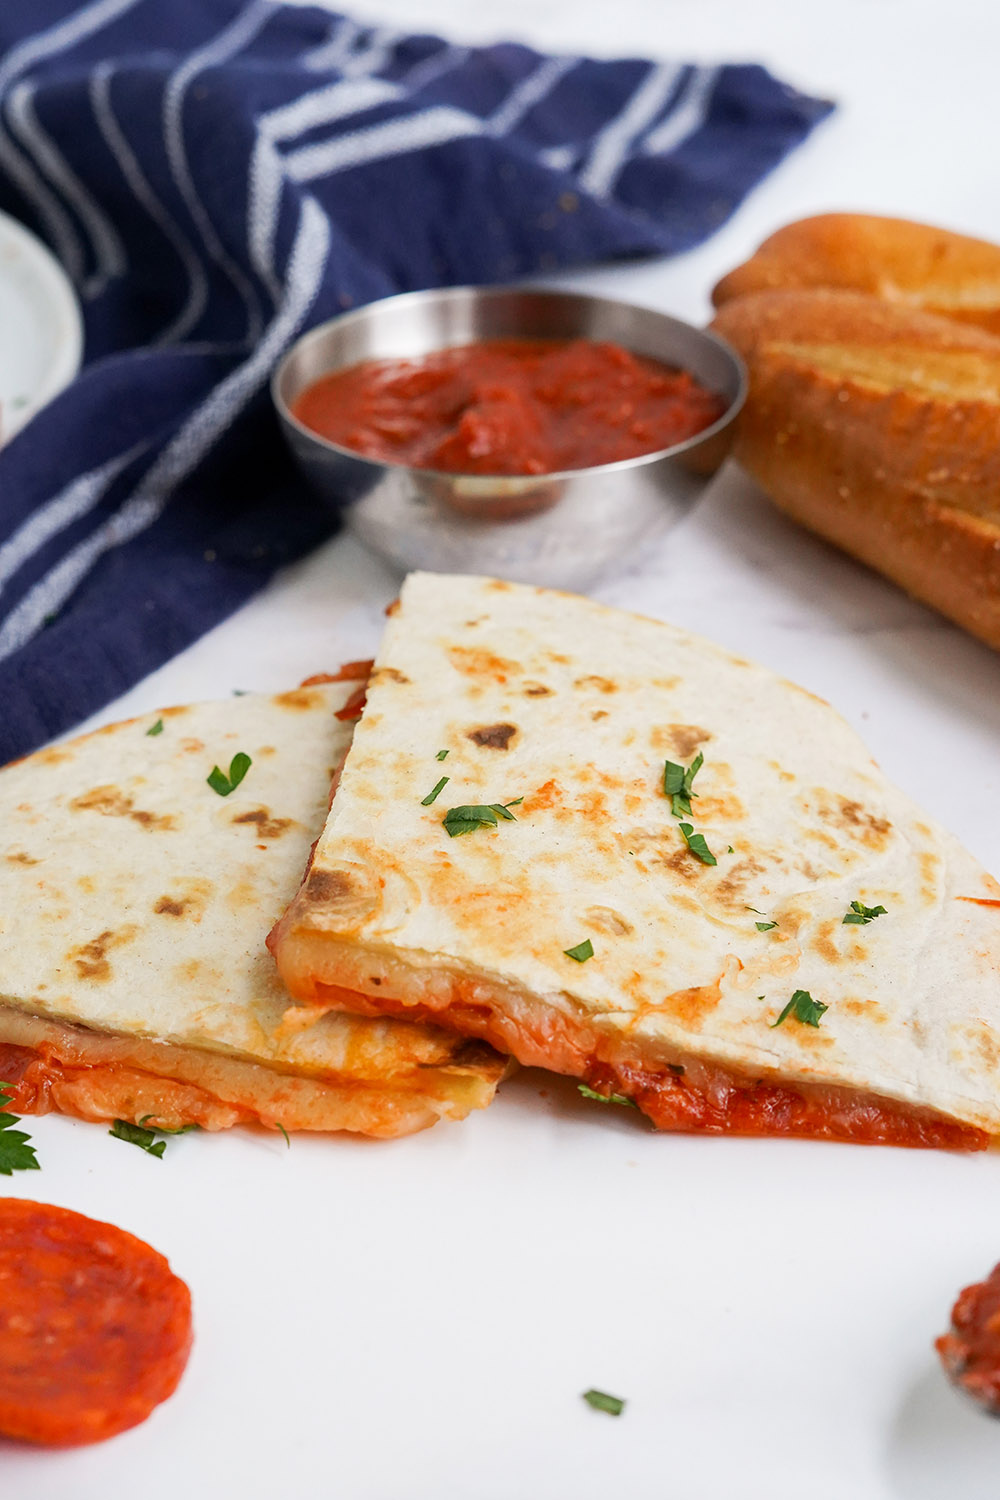 Two quesadilla slices on a table with dipping sauce.